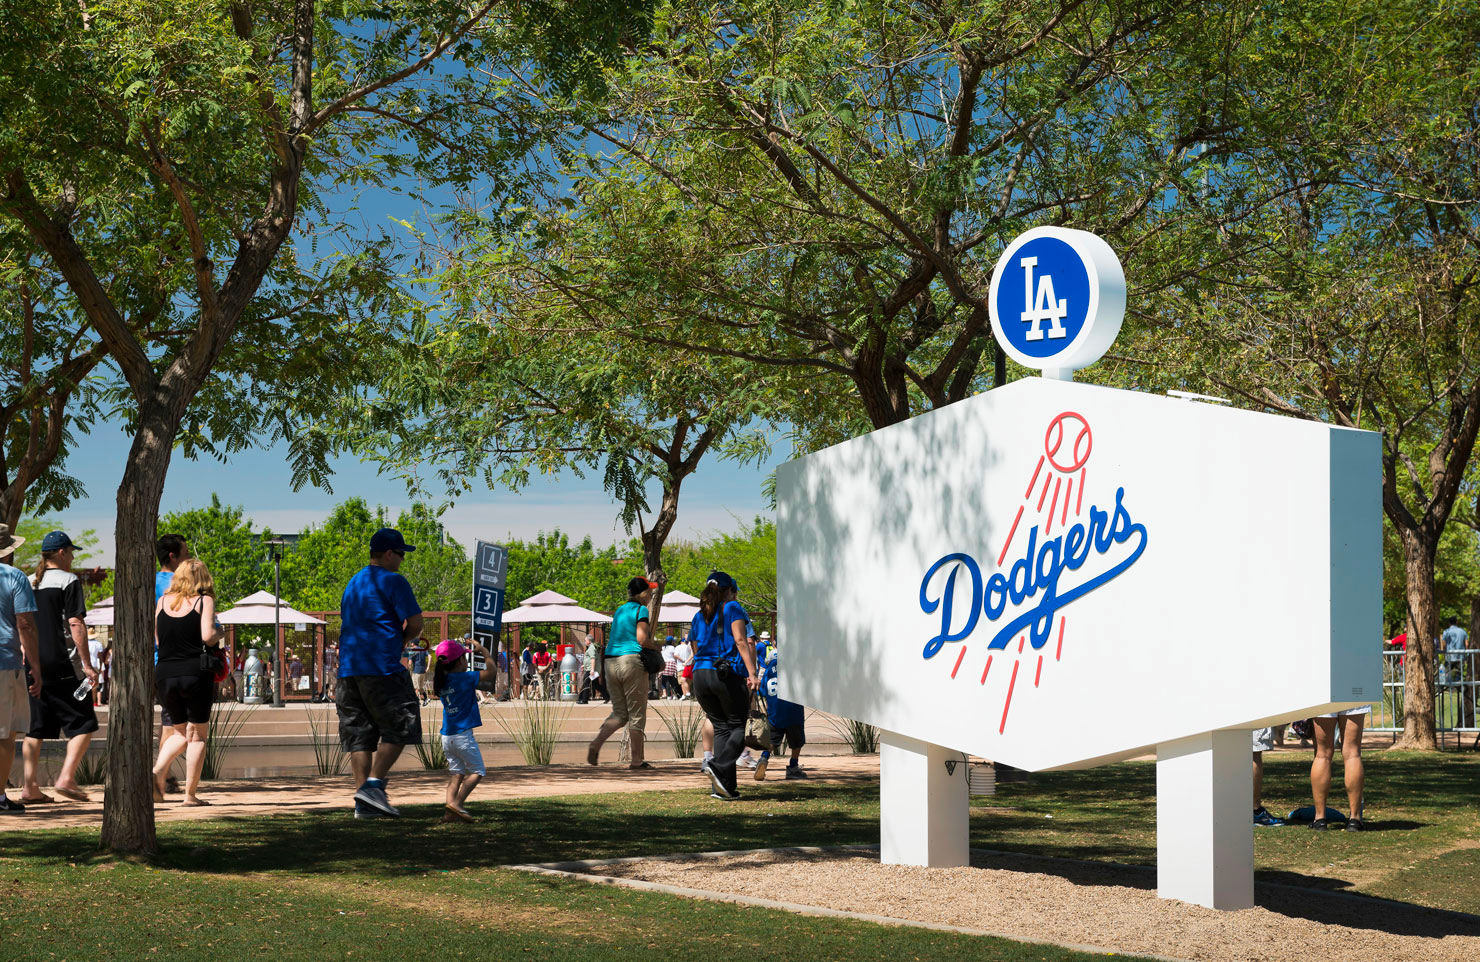 Signage System for Camelback Ranch / Dodger's Spring Training facility. Designed by Younts Design Inc. @enviromean